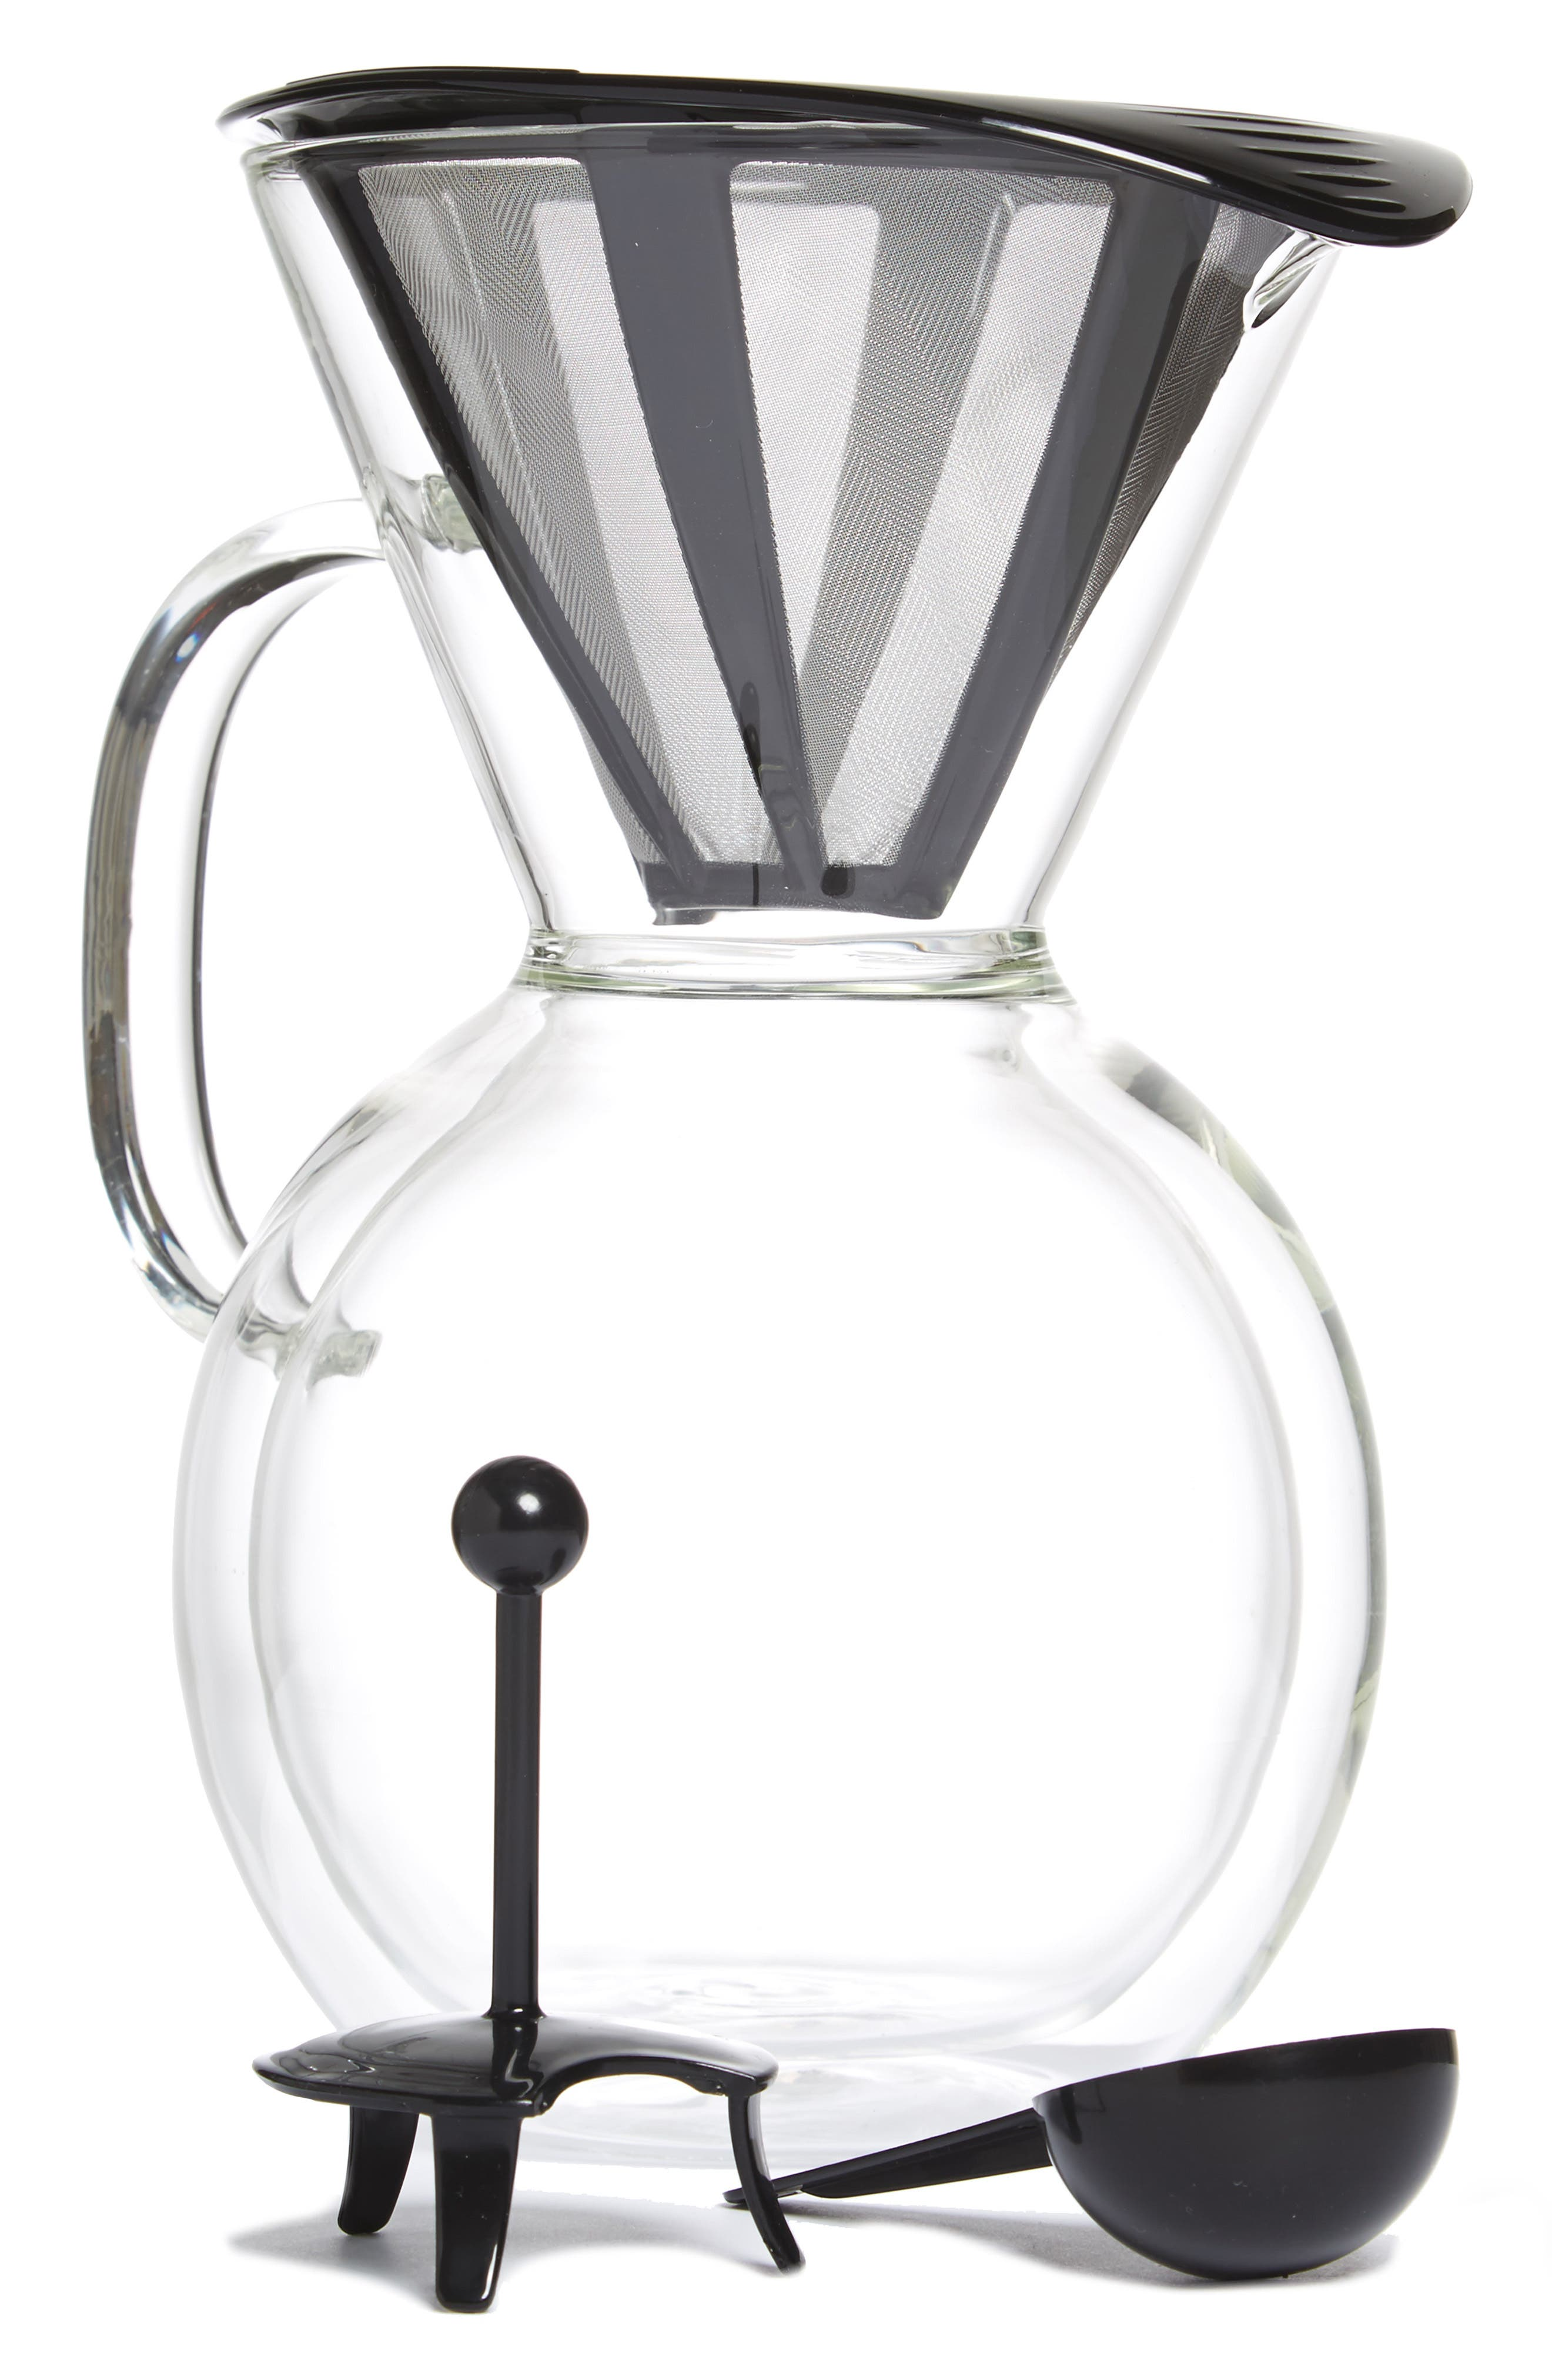 Main Image - Bodum Pour Over Coffee Maker with Handle